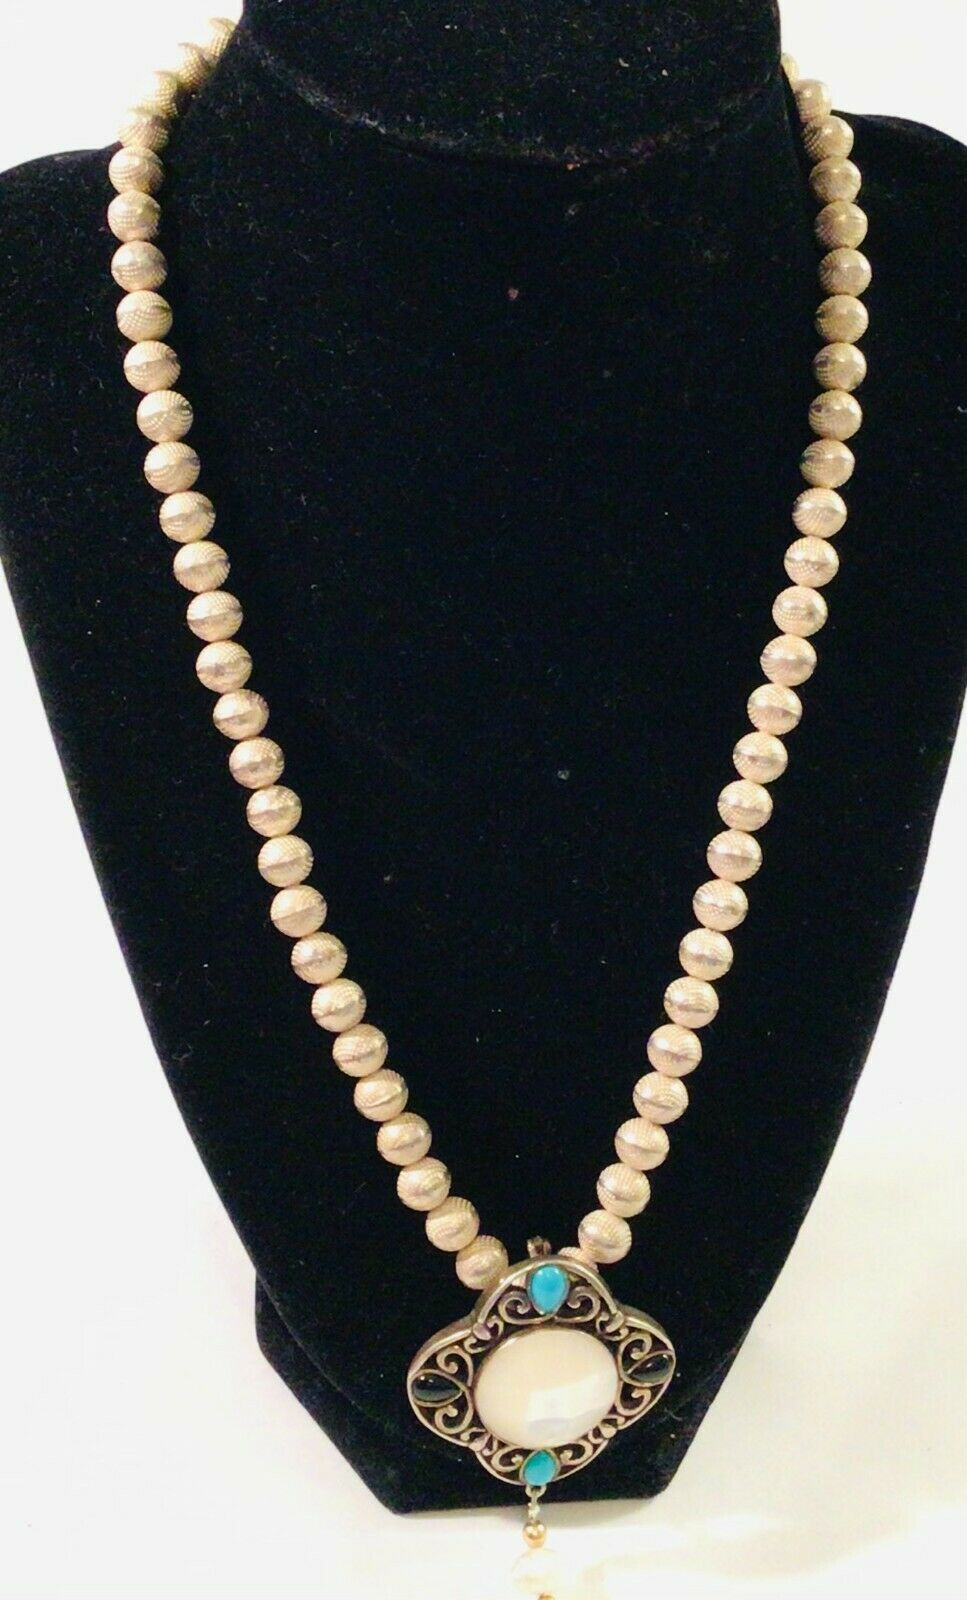 Vintage Antique Beads Beaded Gorgeous Chain Design Necklace 925 Sterling Silver NC 2158